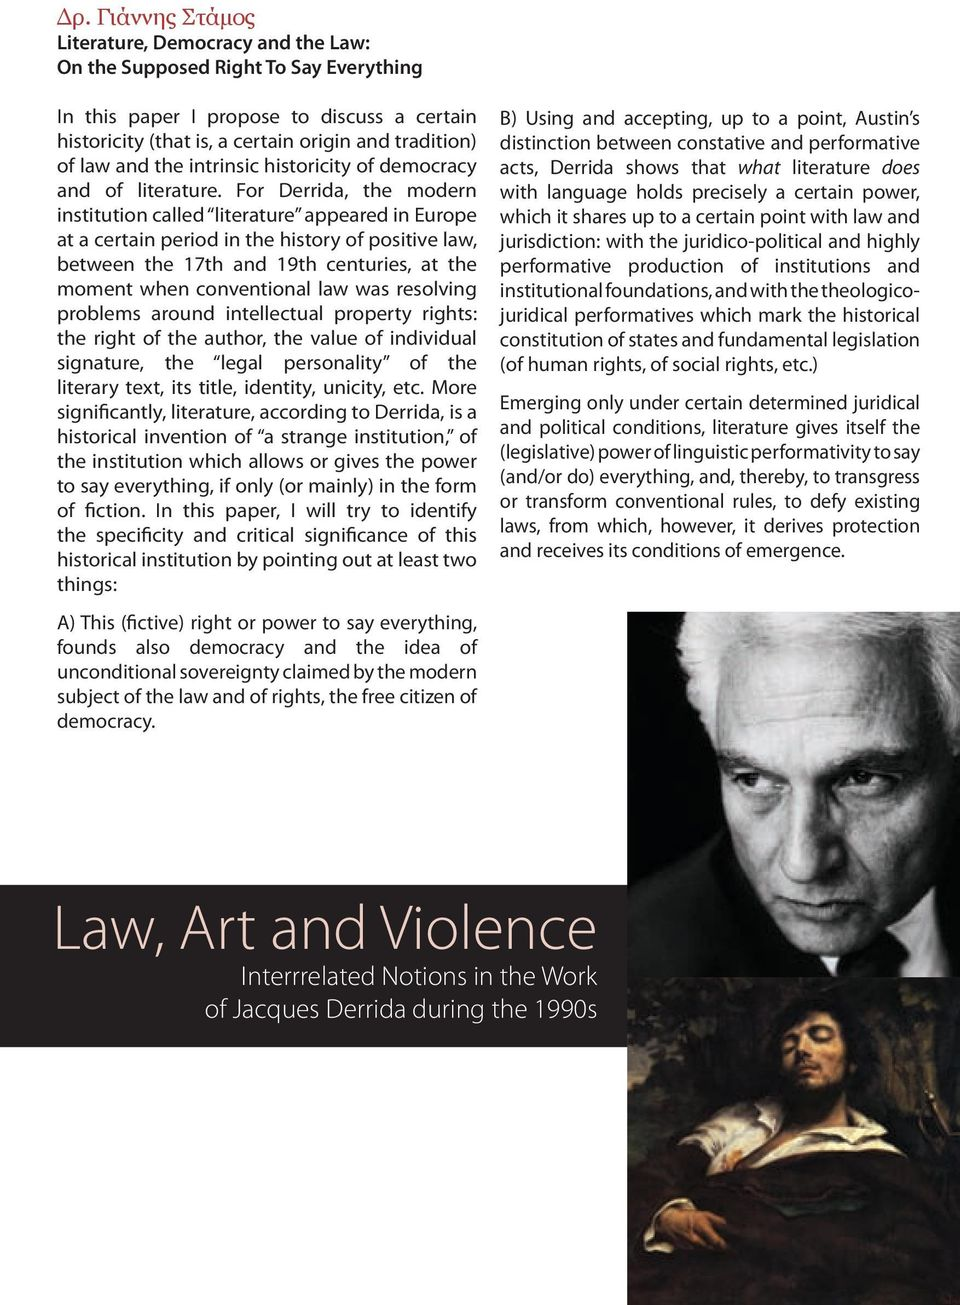 For Derrida, the modern institution called literature appeared in Europe at a certain period in the history of positive law, between the 17th and 19th centuries, at the moment when conventional law